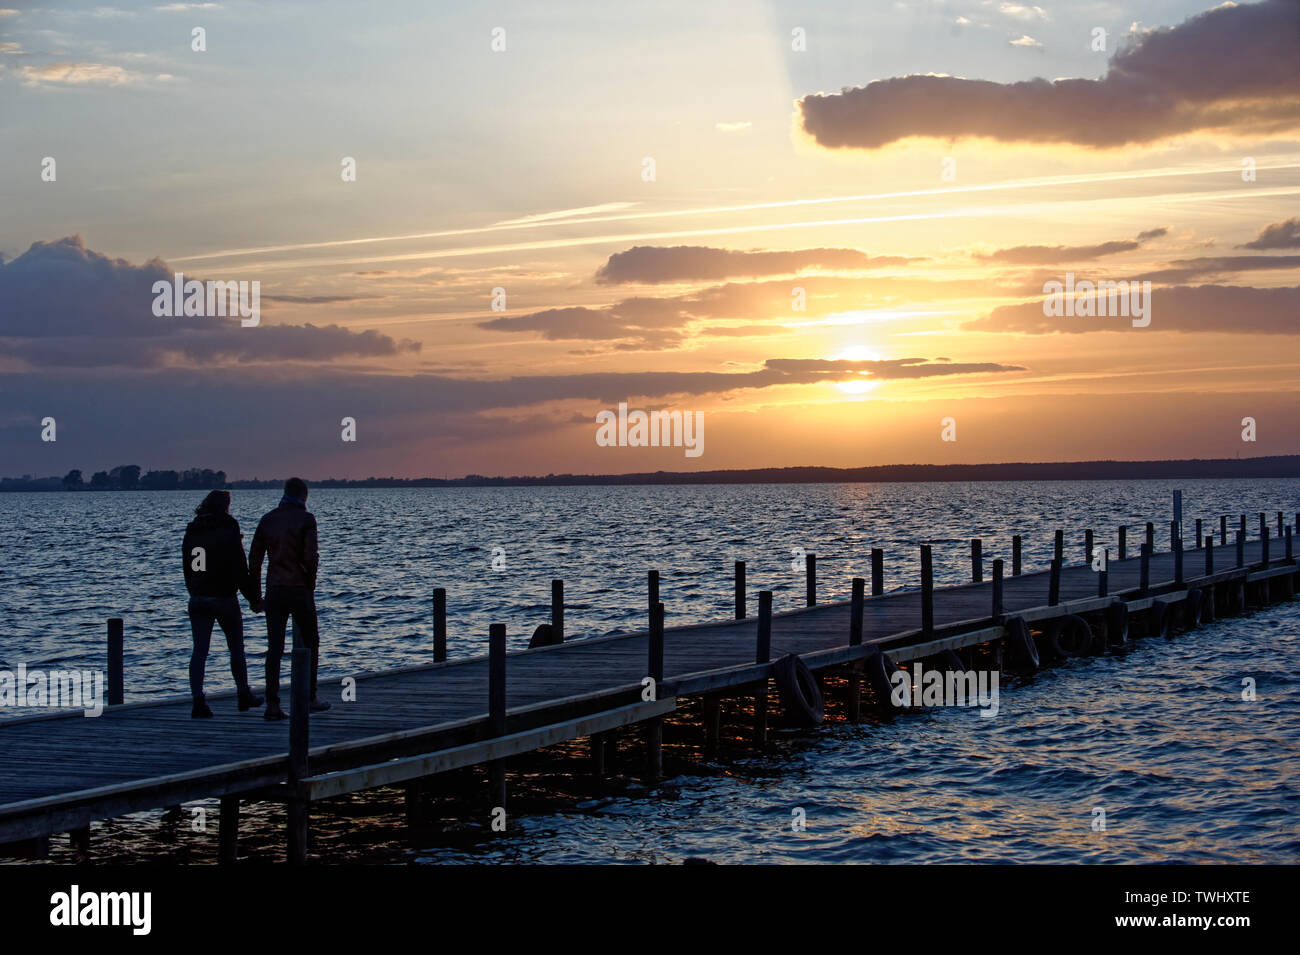 Young couple walking on wooden pier above lake at sunrise.Steinhuder Meer,Germany. - Stock Image